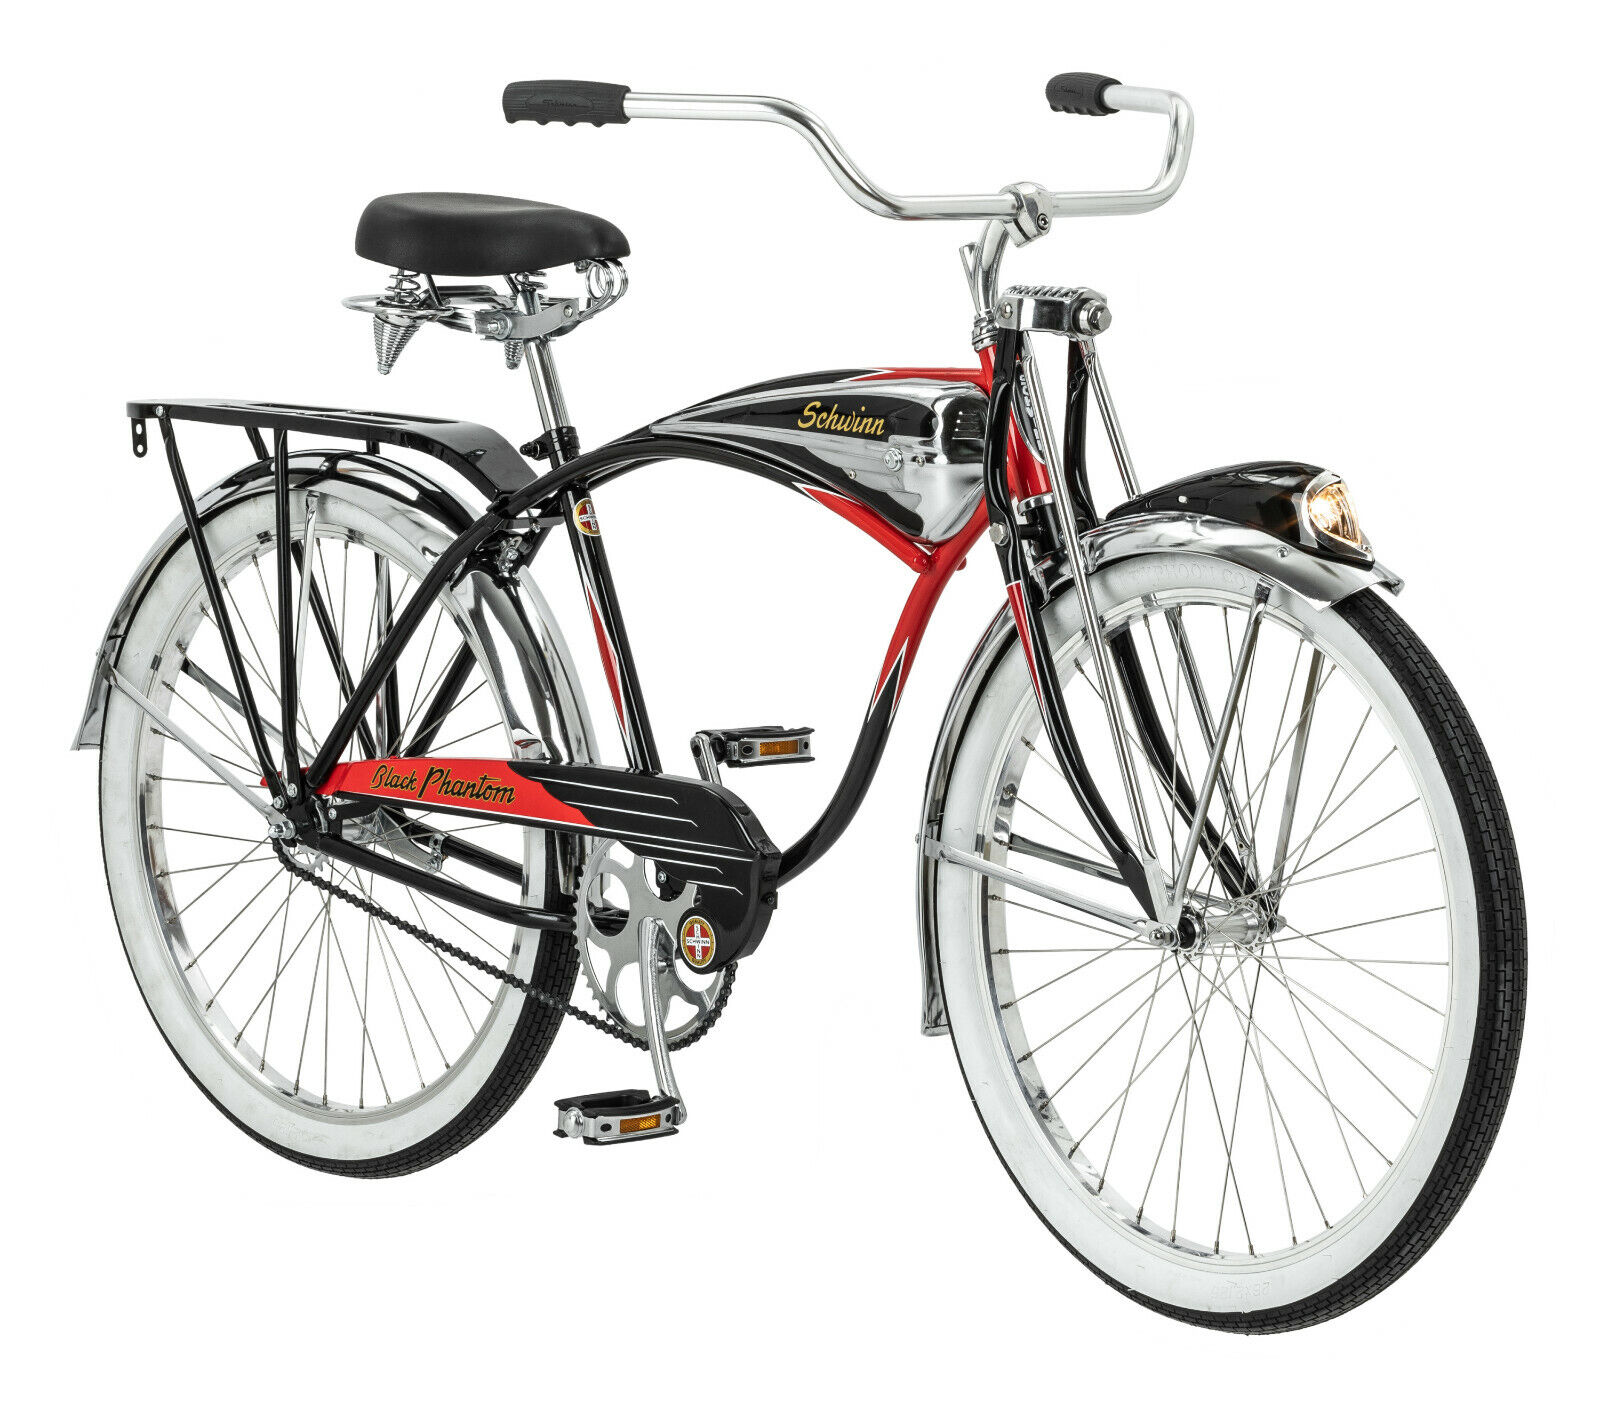 Schwinn Black Phantom Cruiser Bike, single speed, 26-inch wheels 125 Anniversary (New - 1199.99 USD)